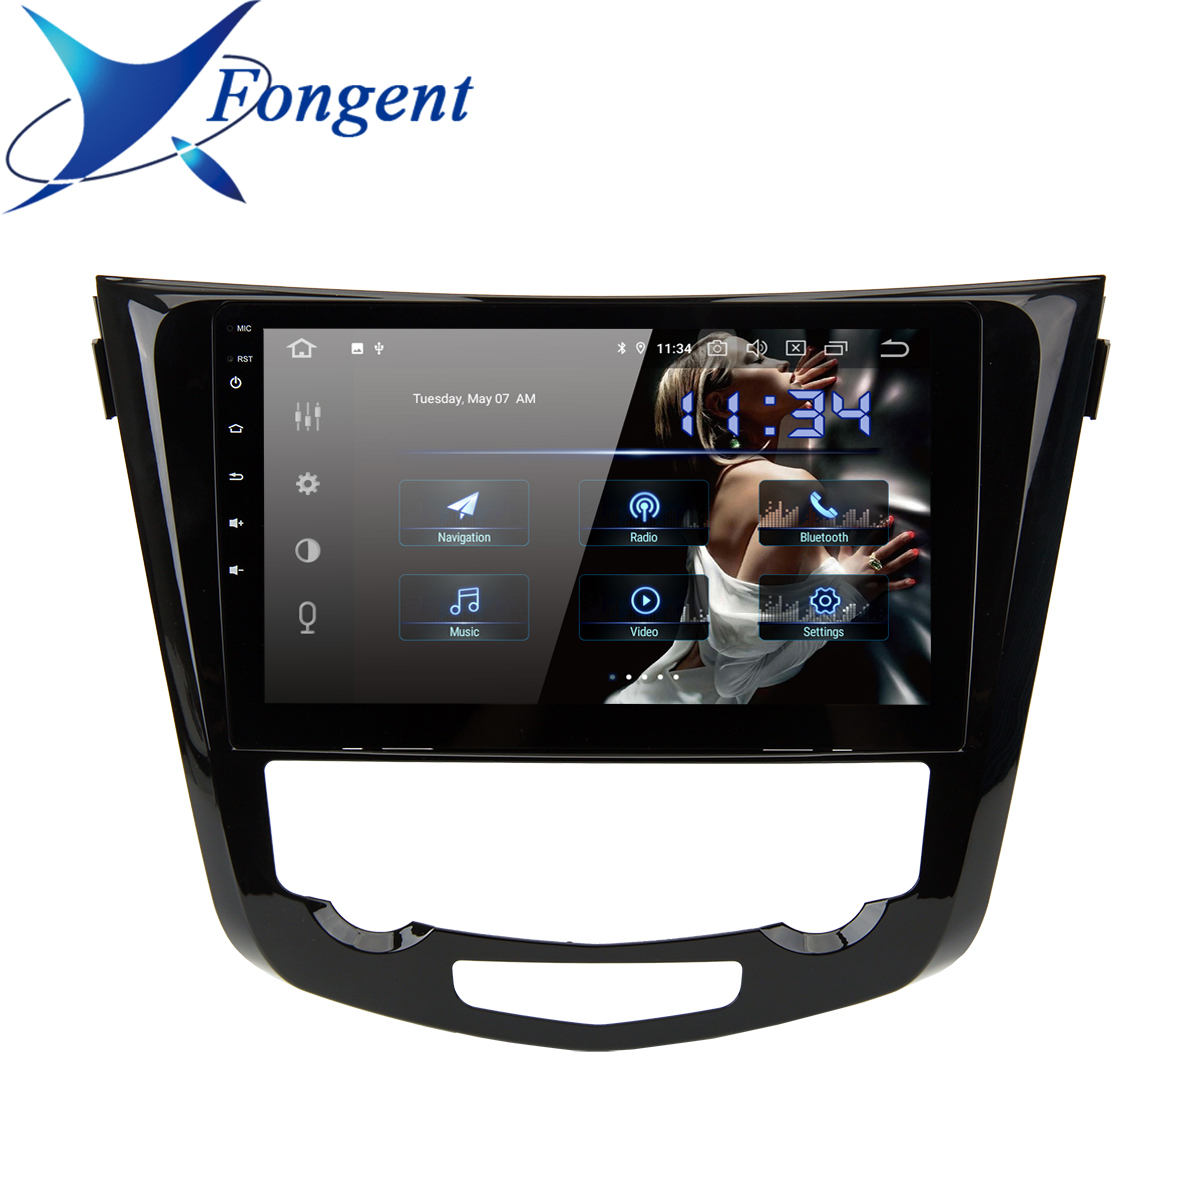 10.2 inch IPS Screen Car Multimedia Android GPS NAVI for Nissan X-Trail Qashqai j11 j10 Radio 2014 2015 2016 2017 2018 2019 2020 image